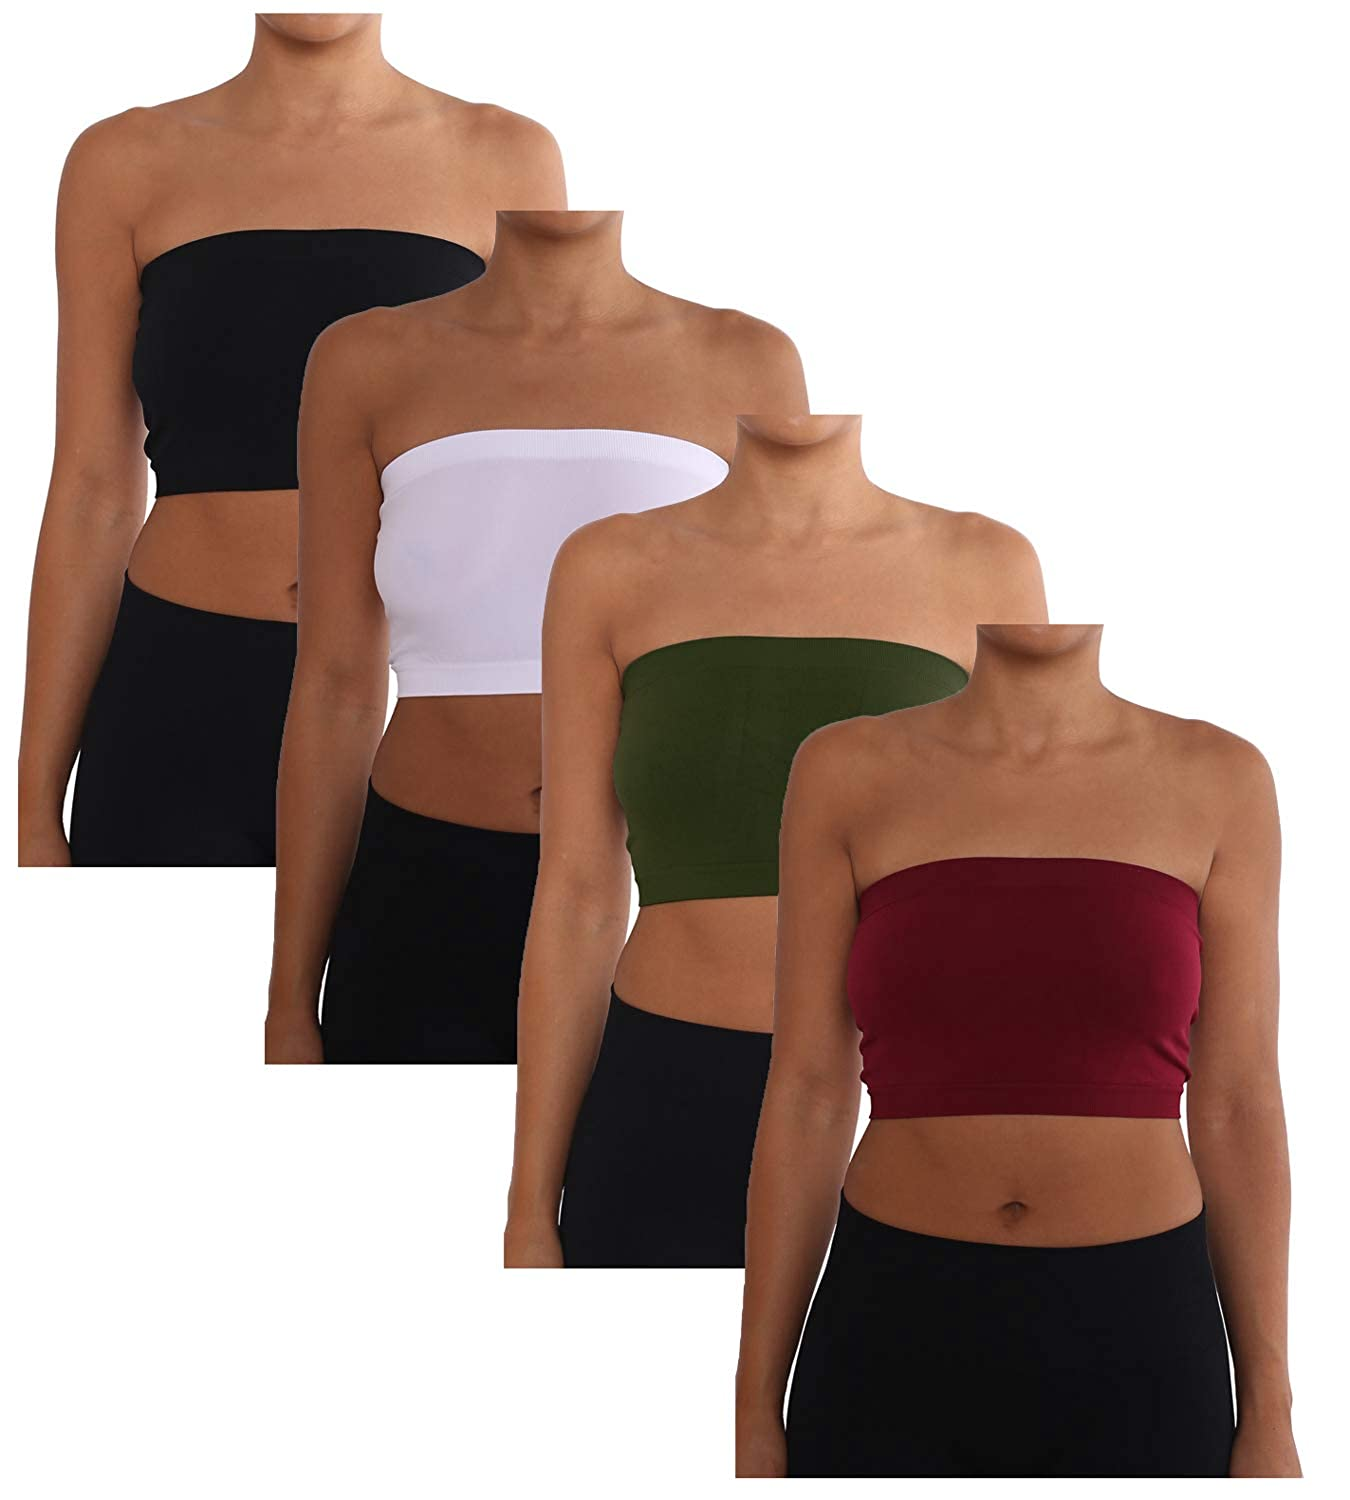 AEKO Womens Combo Pack One Size Strapless Base Bra Layer Bandeau Seamless Tube Top Regular and Plus Sizes